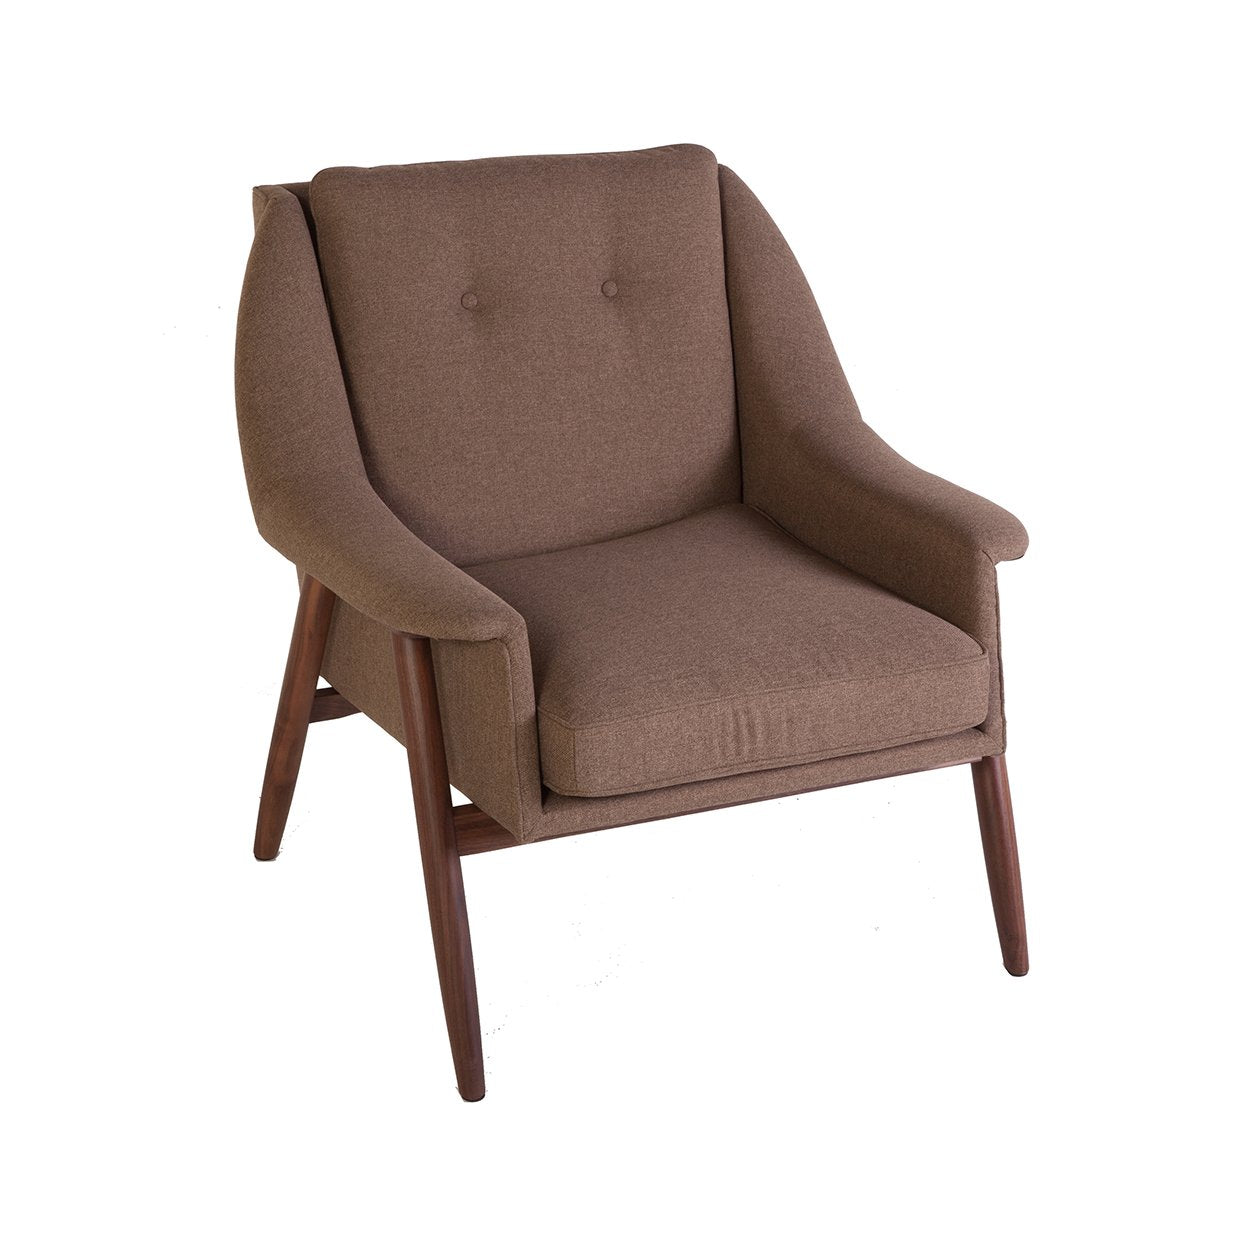 [FEC9305BROWN] Hobart Arm Chair SALE